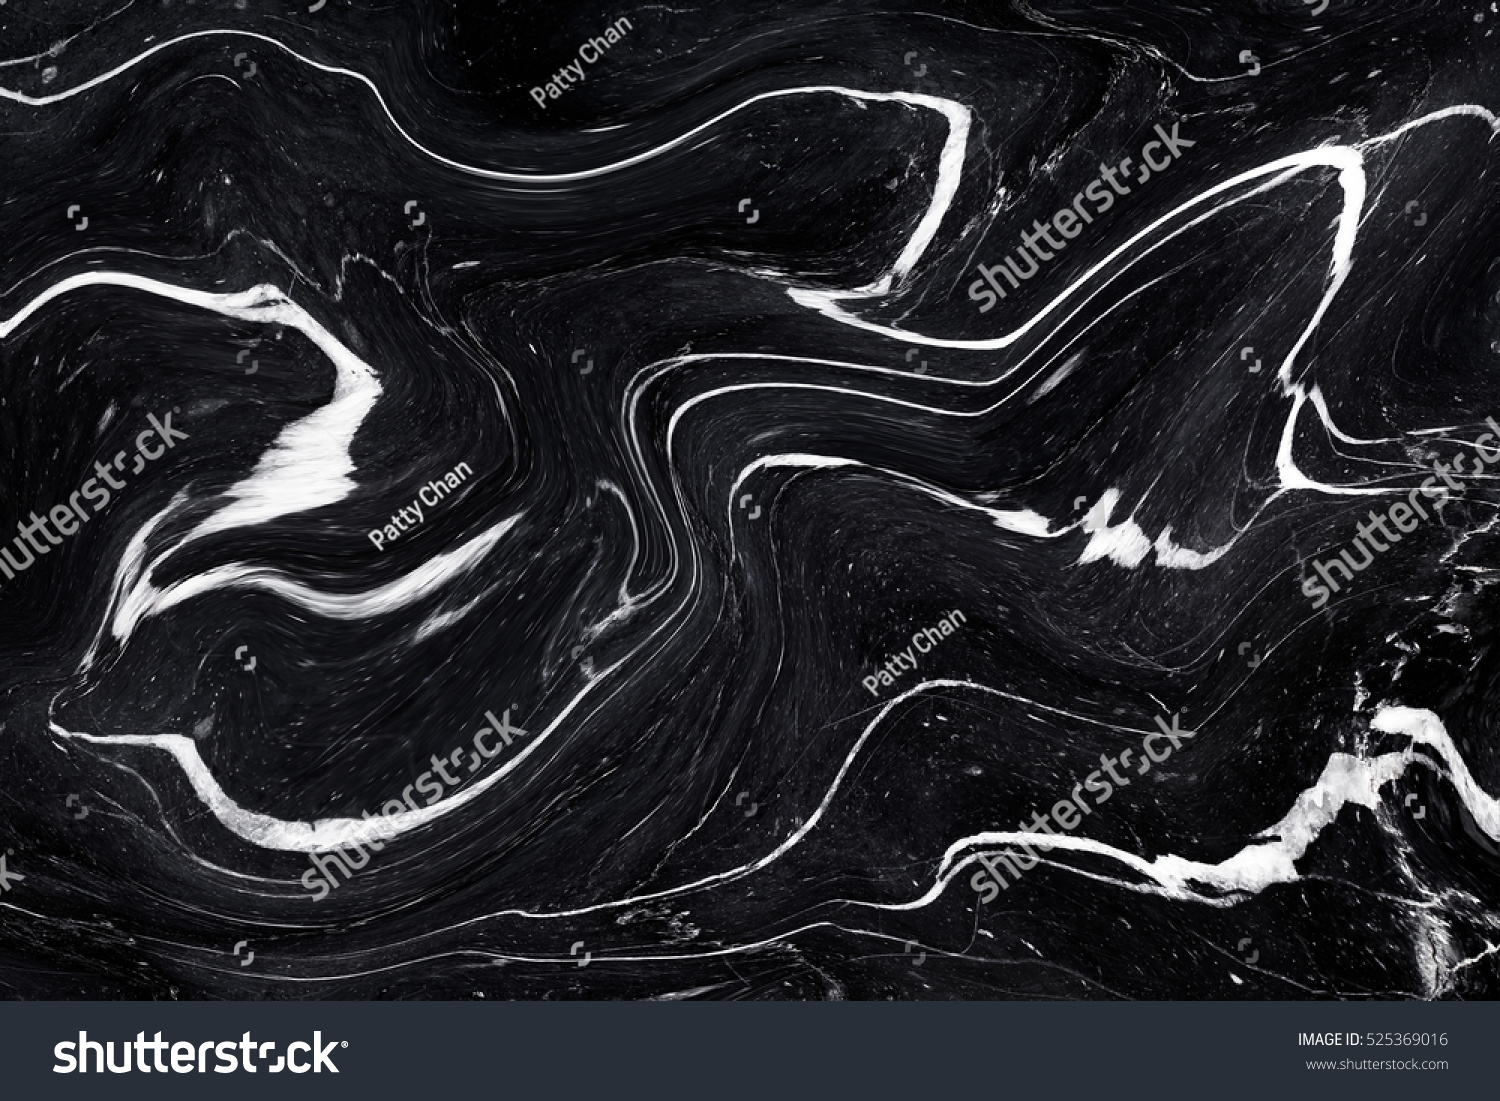 Black Marble Ink Texture Acrylic Painted Stock Photo